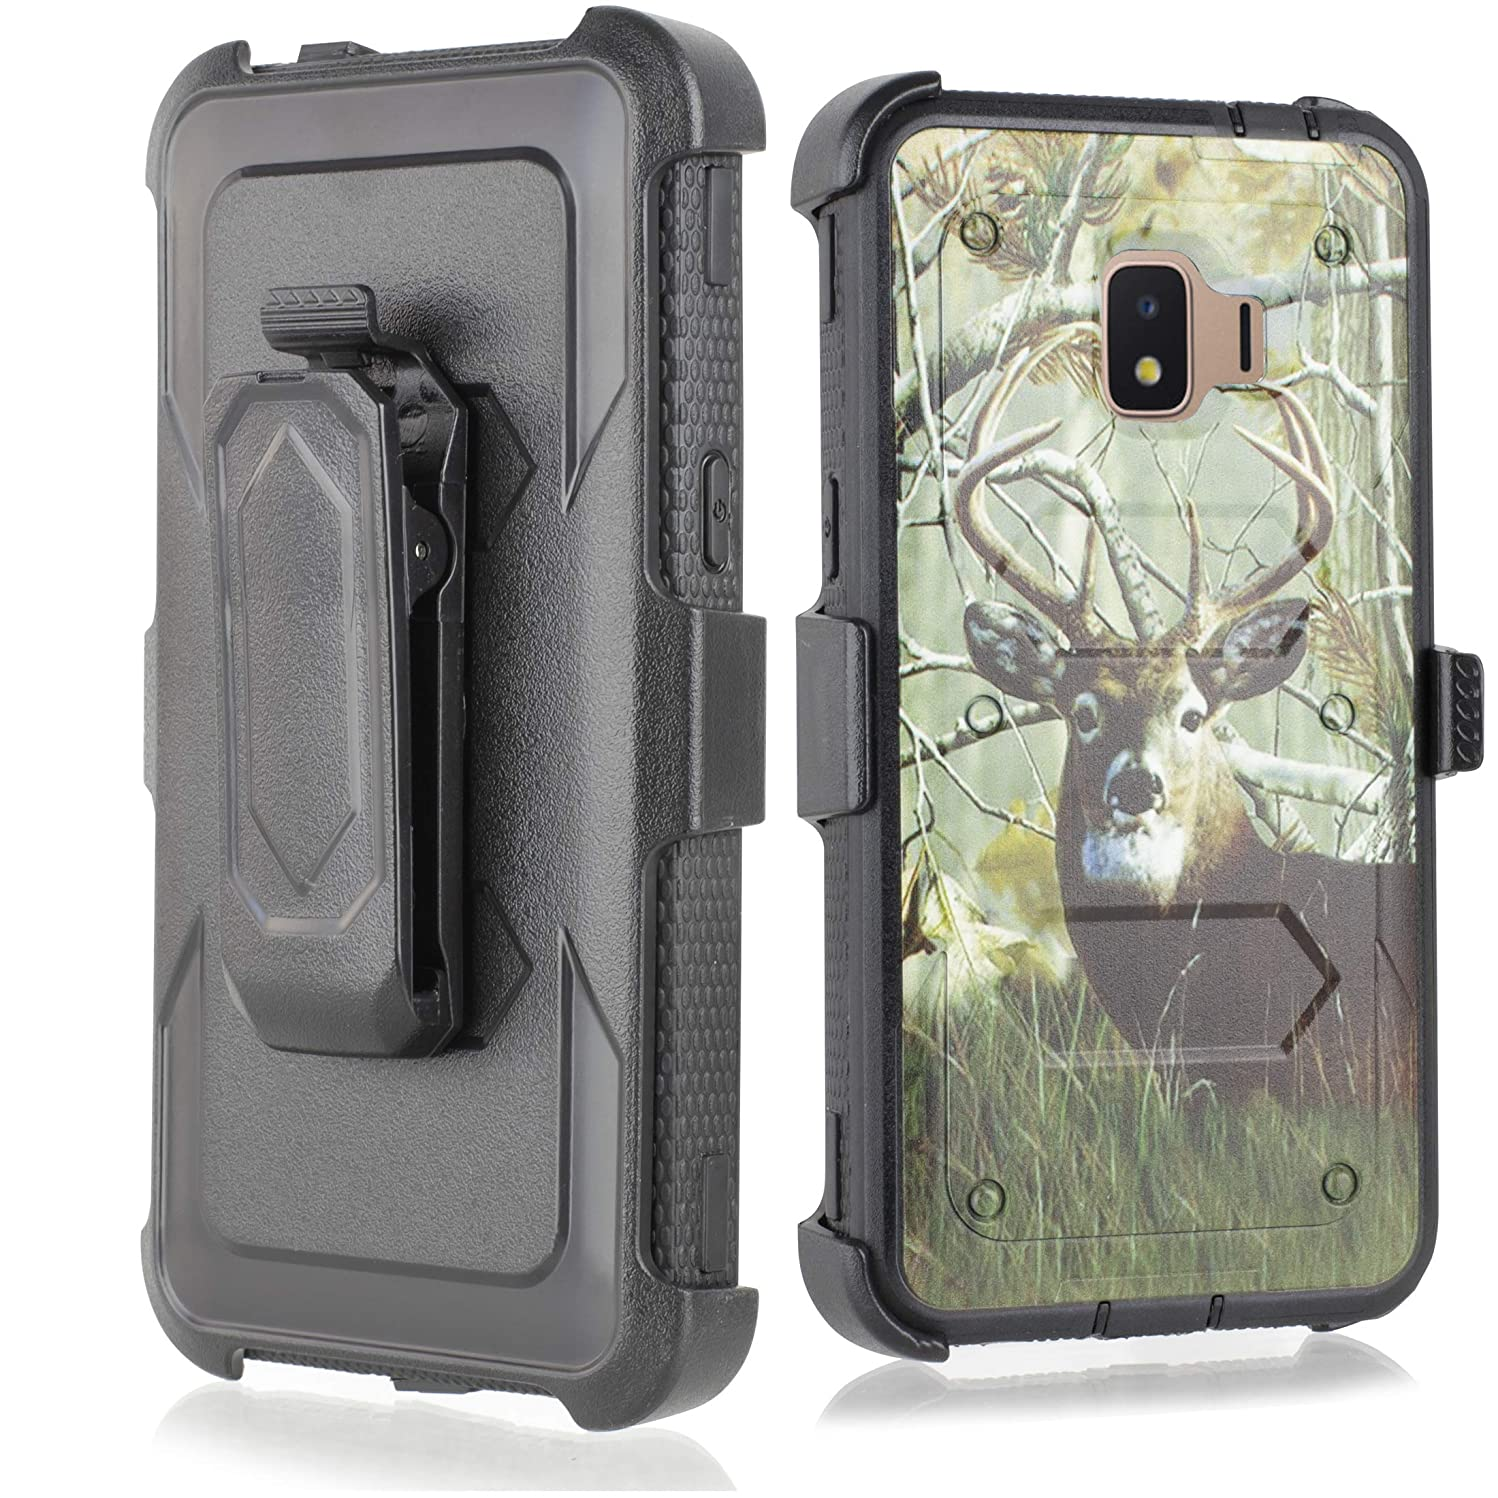 Compatible for Galaxy J2 core Case,Galaxy J2 Dash/J2 Pure/J260 case, w/Built-in [Screen Protector] Heavy Duty Full-Body Armor Case [Belt Clip Holster][Kickstand] (Deer)